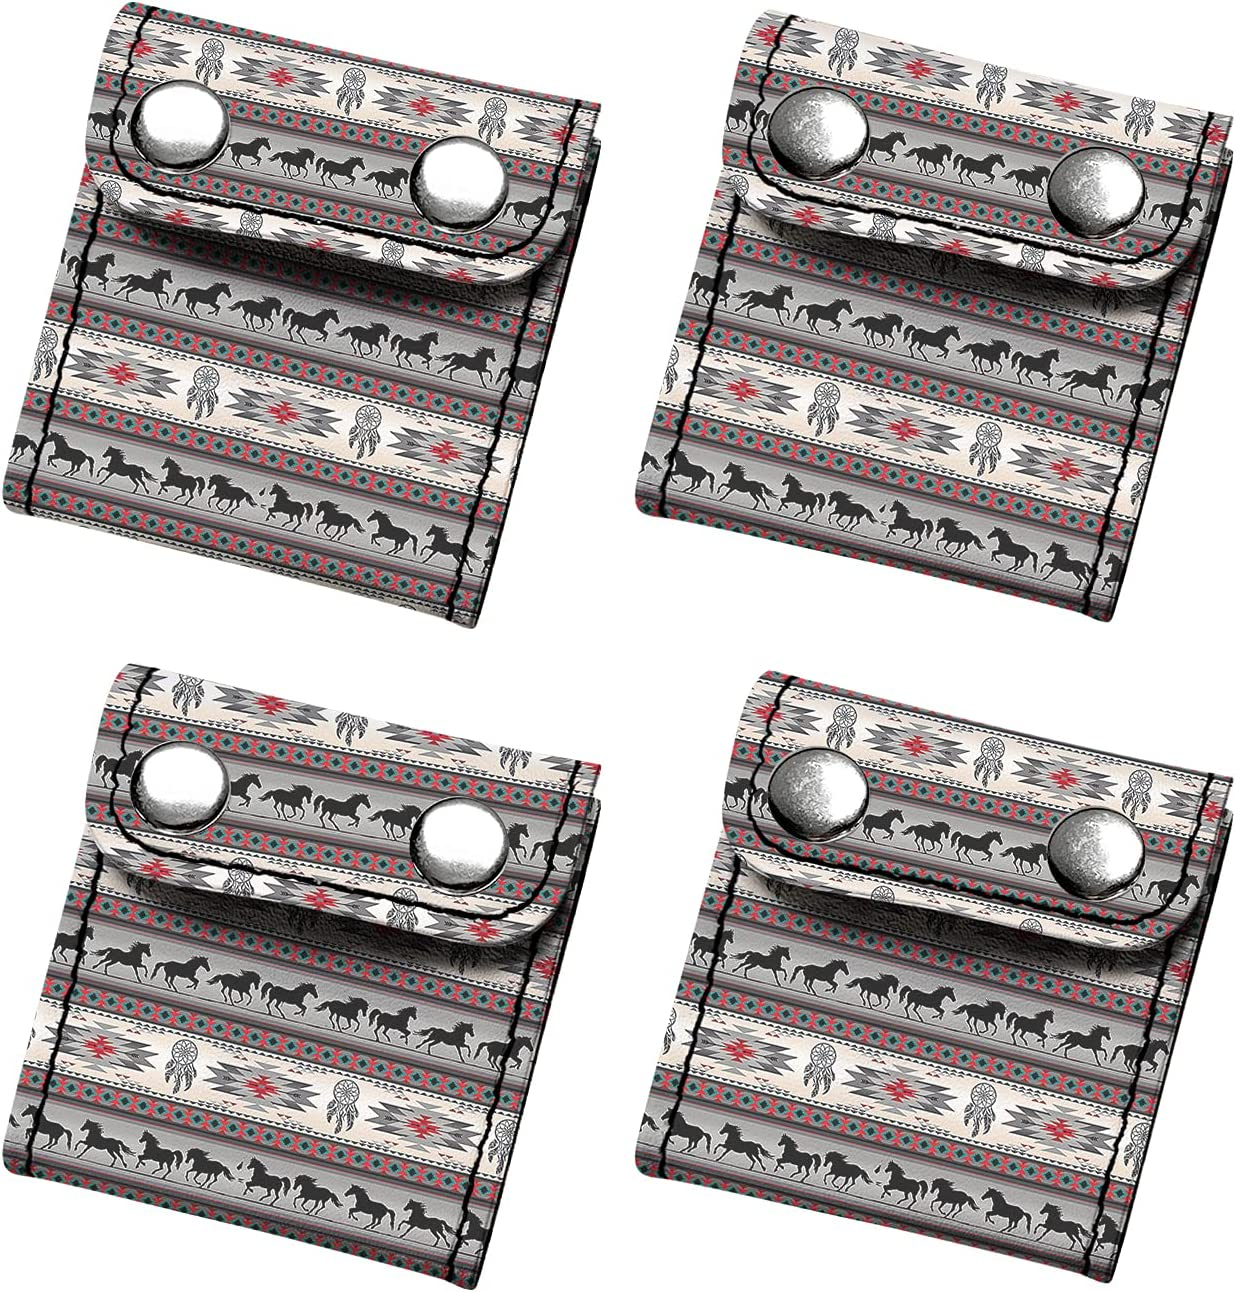 XYZCANDO Seat Belt Adjusters, Car Seat Belt Locking Clip Protector(Set of 4) Fit for Children, Adult Easy to Clean, Cool Aztec Print